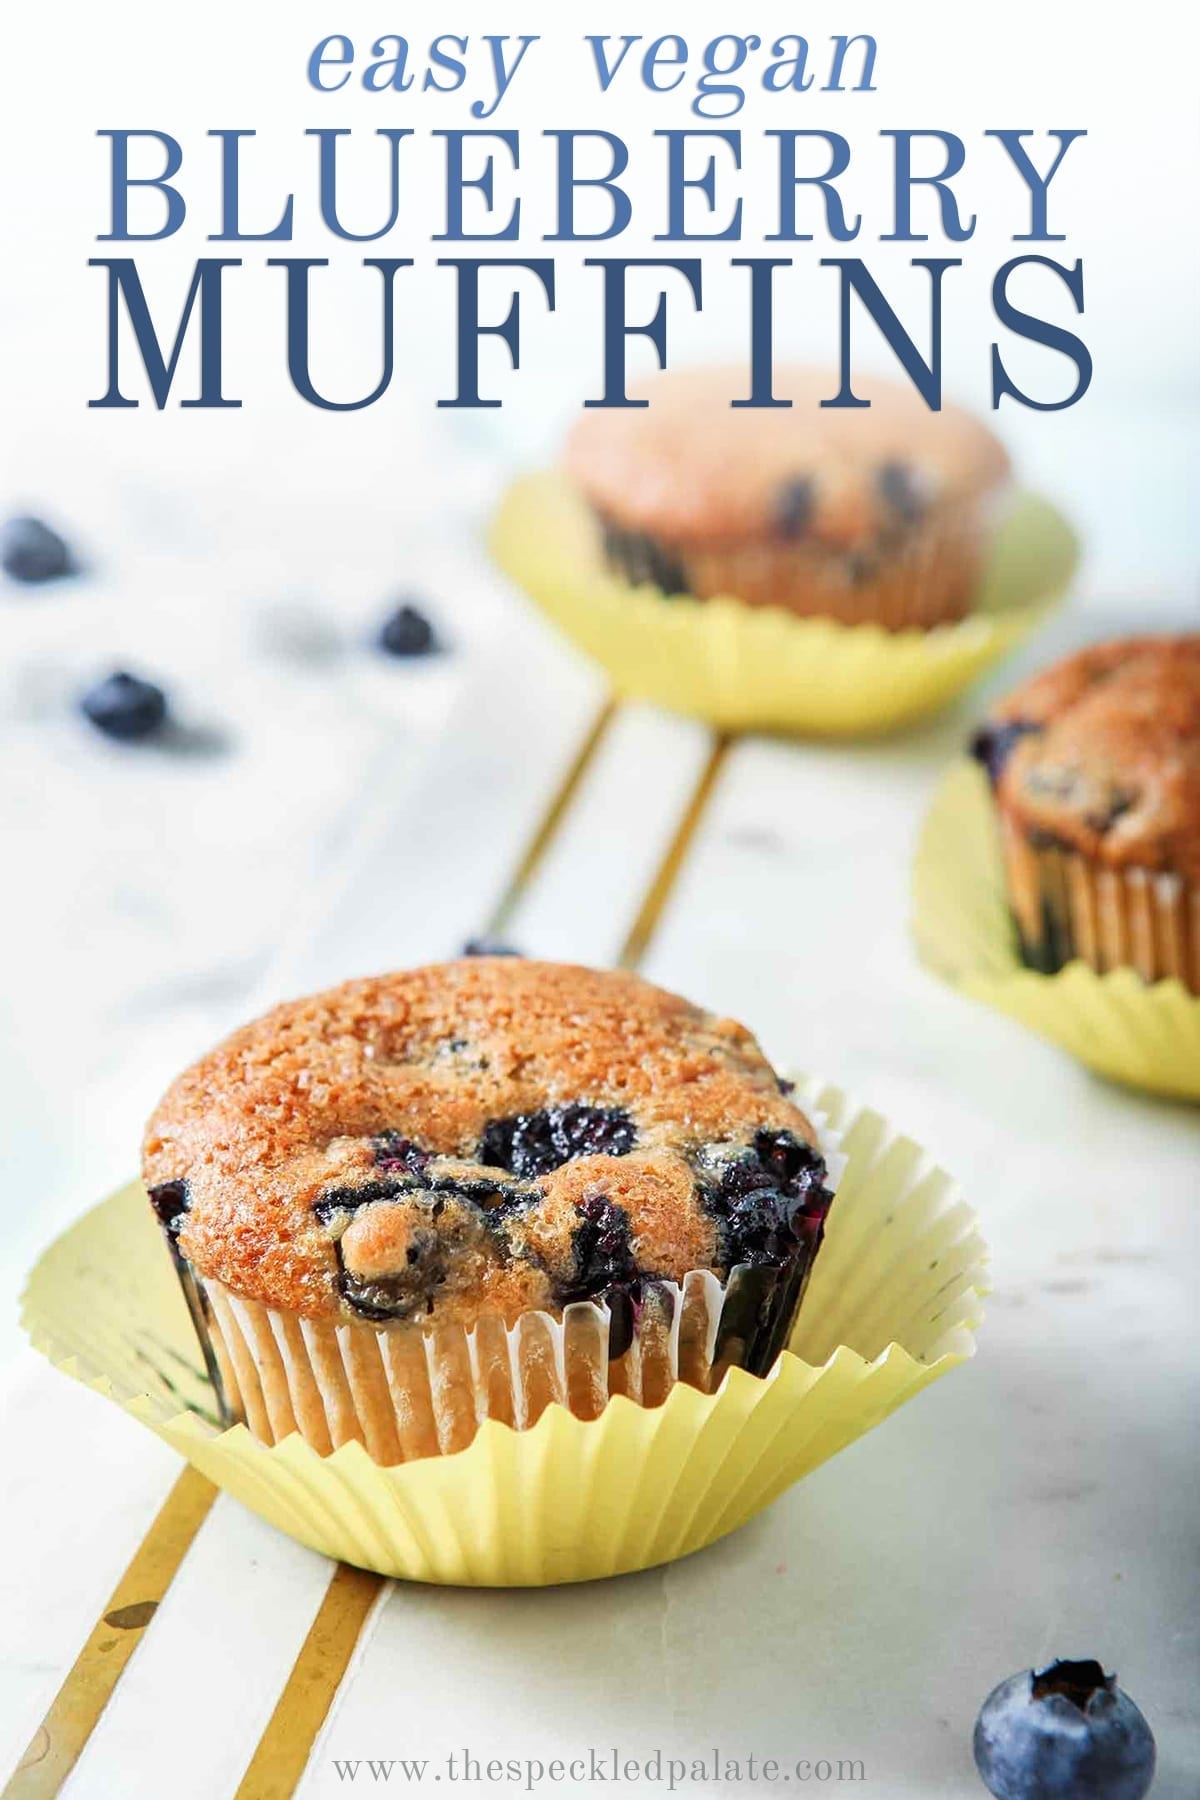 Three Vegan Blueberry Muffins on a marble slab, with Pinterest text